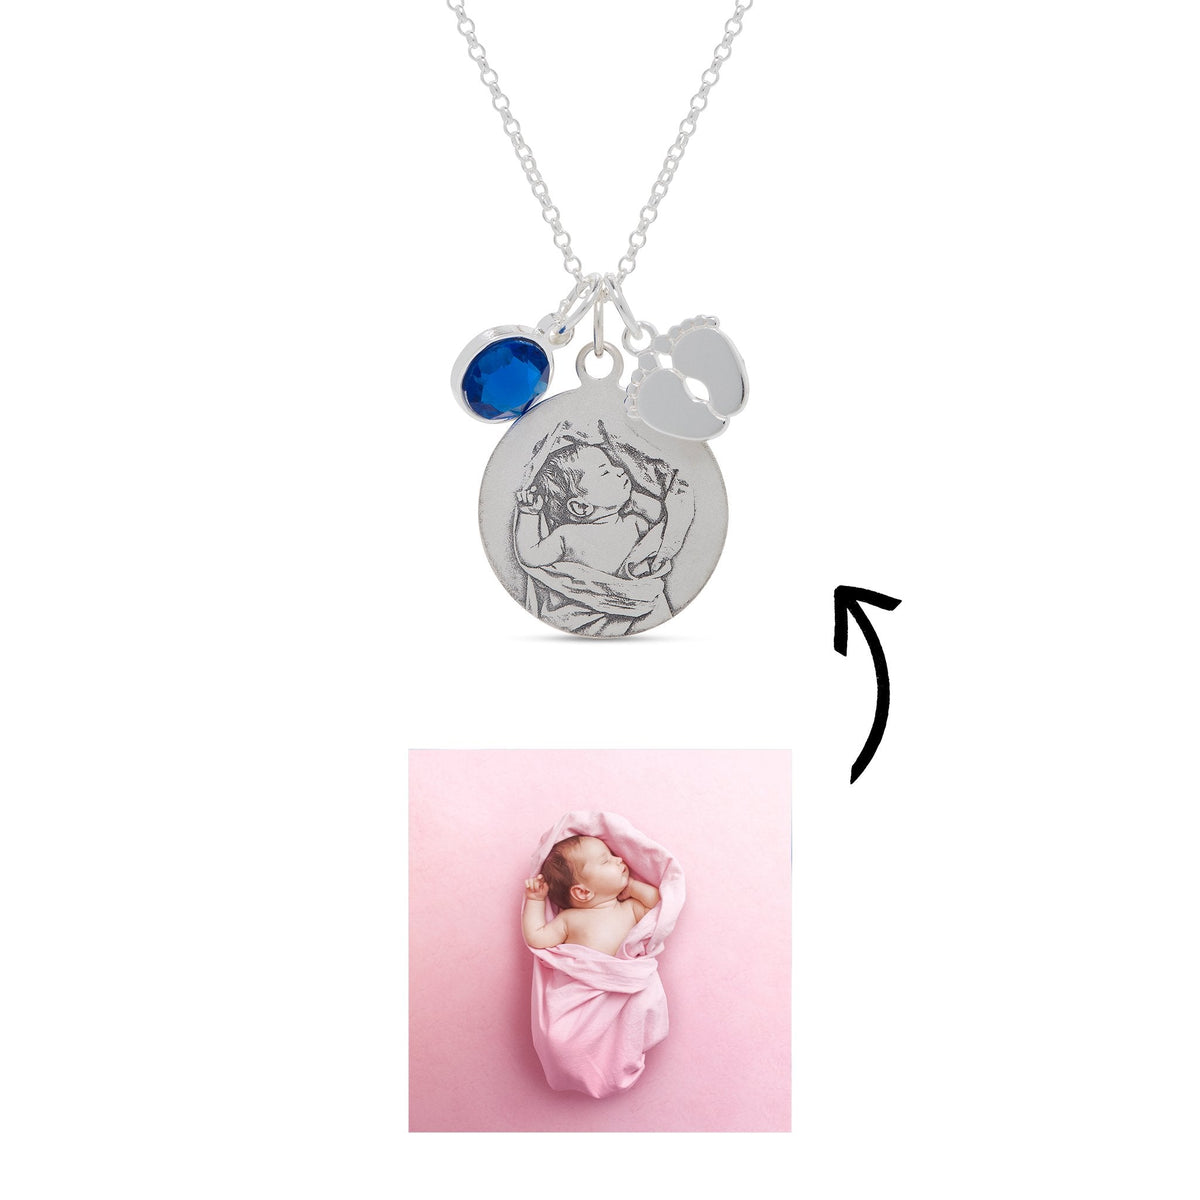 Necklace - Photo Engraved Baby Feet Necklace